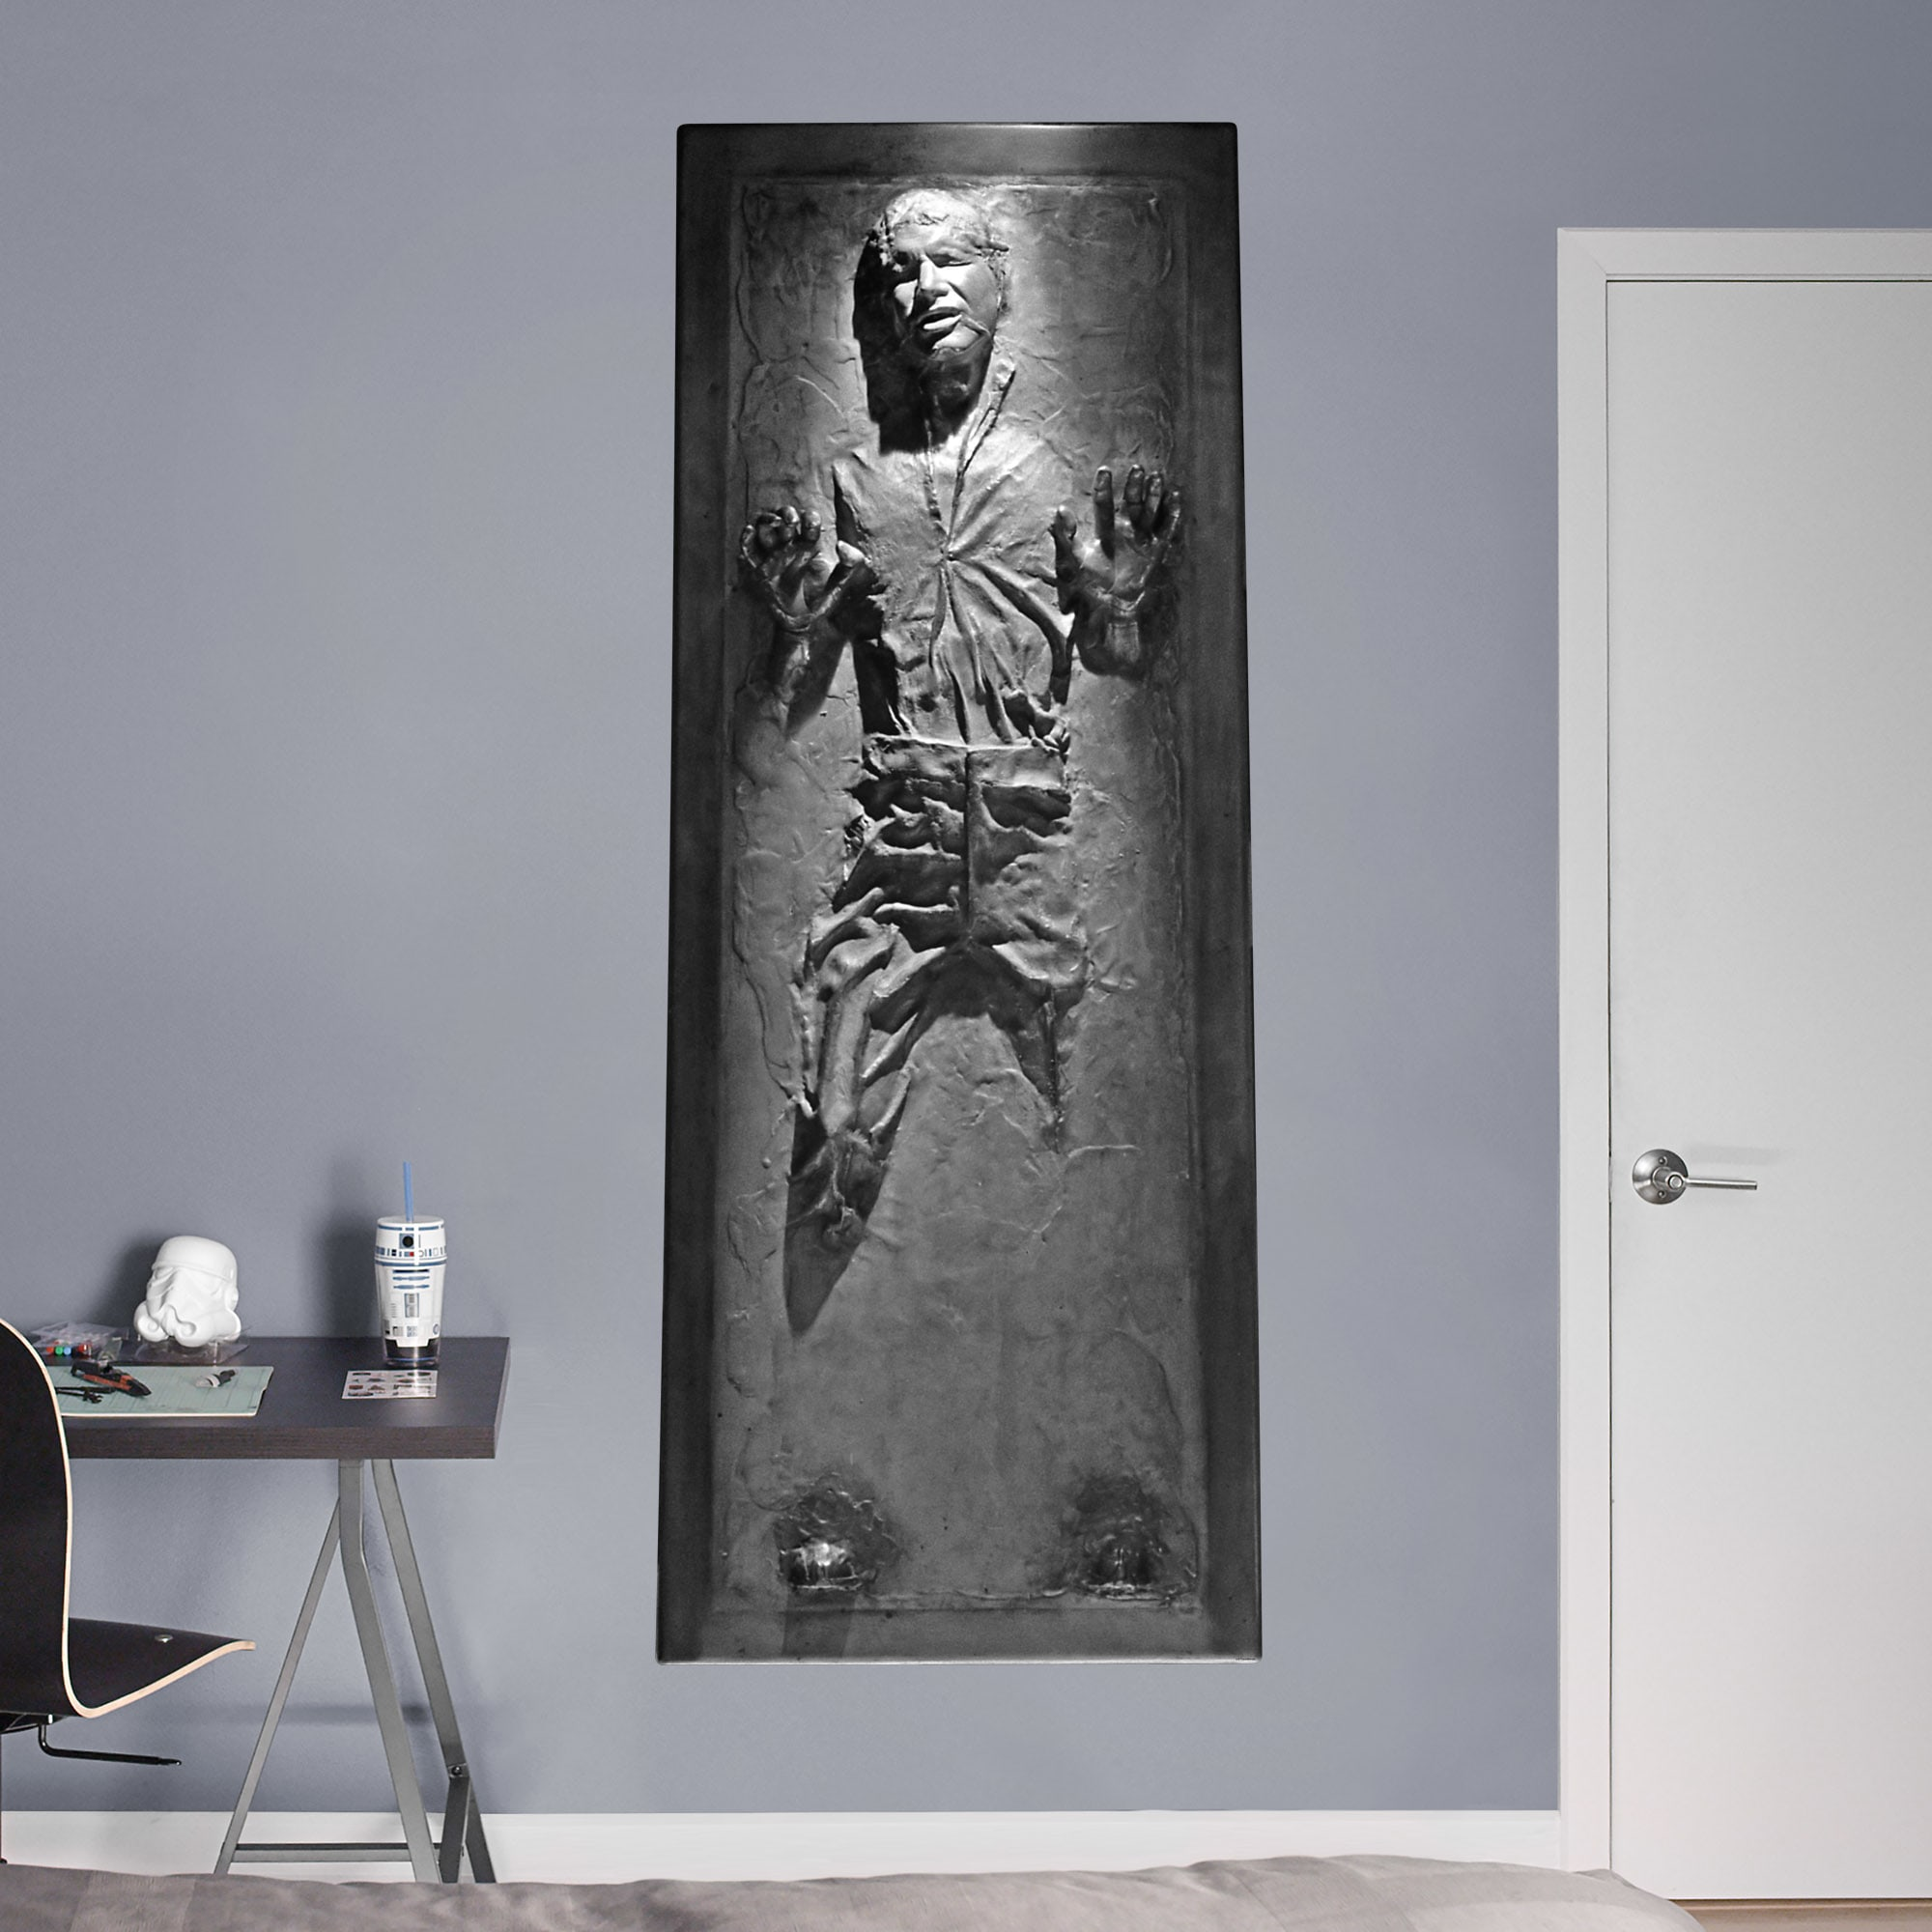 Life Size Han Solo In Carbonite Life Size Officially Licensed Star Wars Removable Wall Decal Wall Decal Star Wars Wall Decal Star Wars Decal Star Wars Room